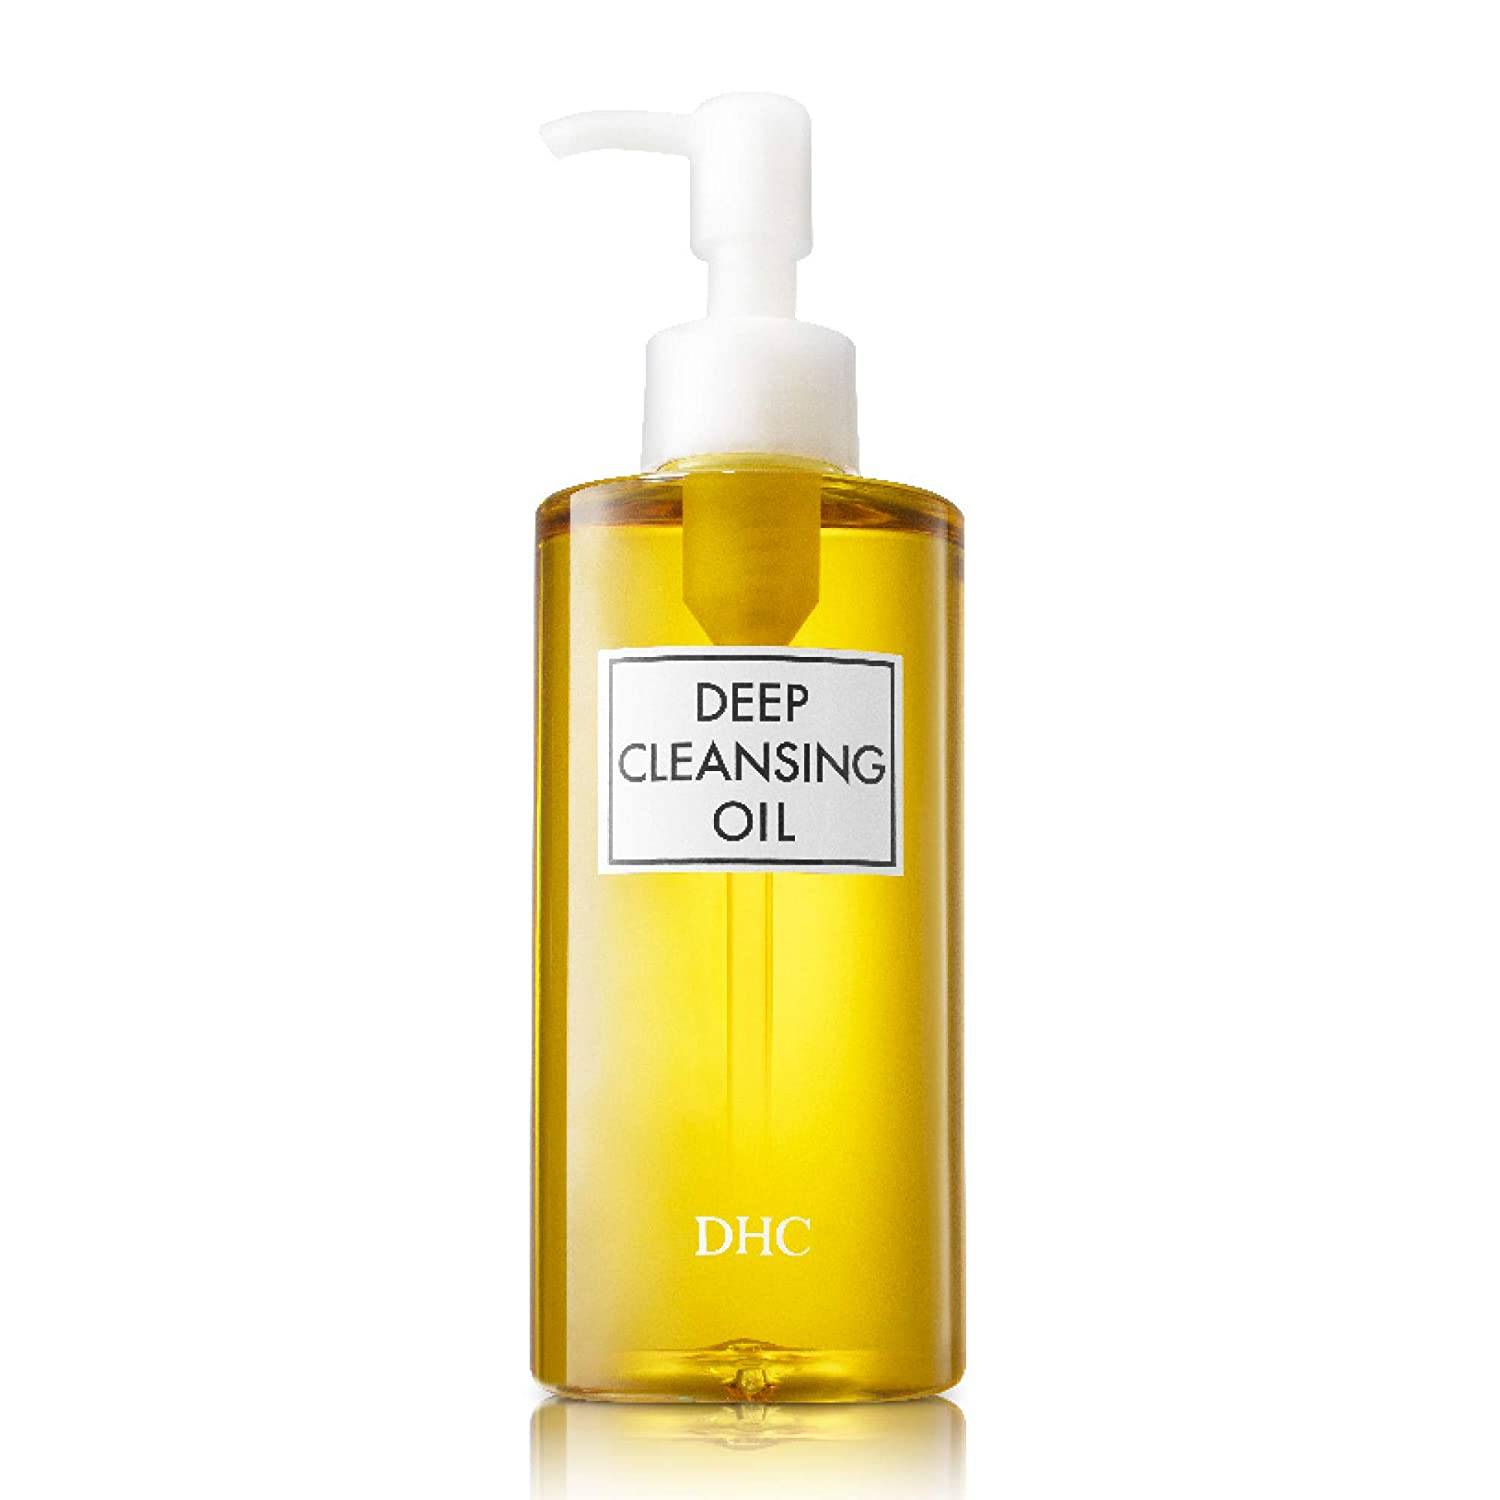 Amazon.com : DHC Deep Cleansing Oil, 6.7 fl. oz. : Facial Cleansing  Products : Beauty